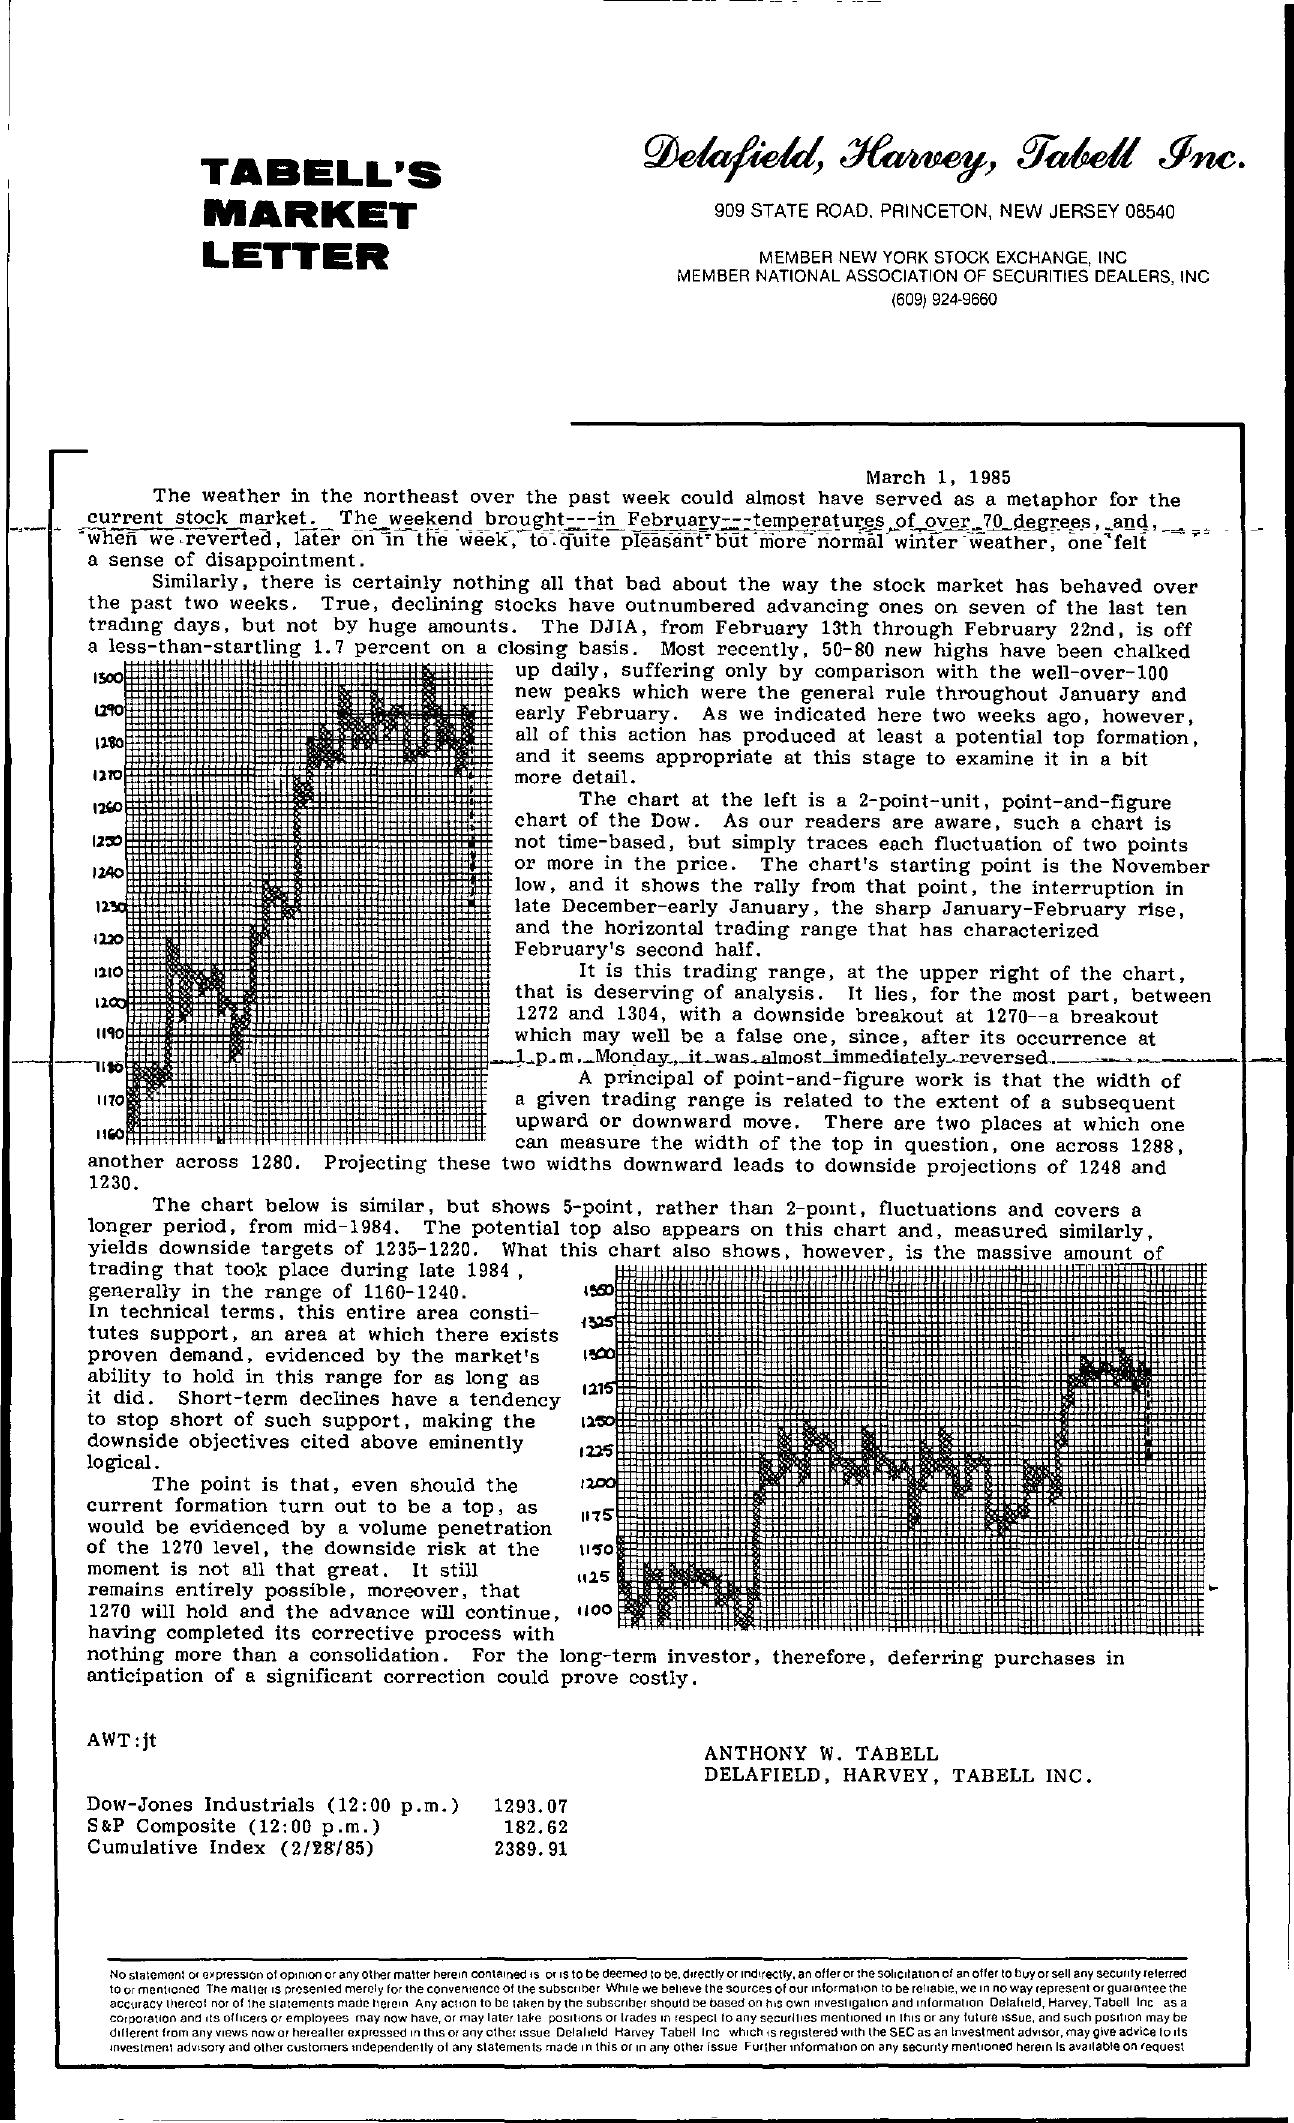 Tabell's Market Letter - March 01, 1985